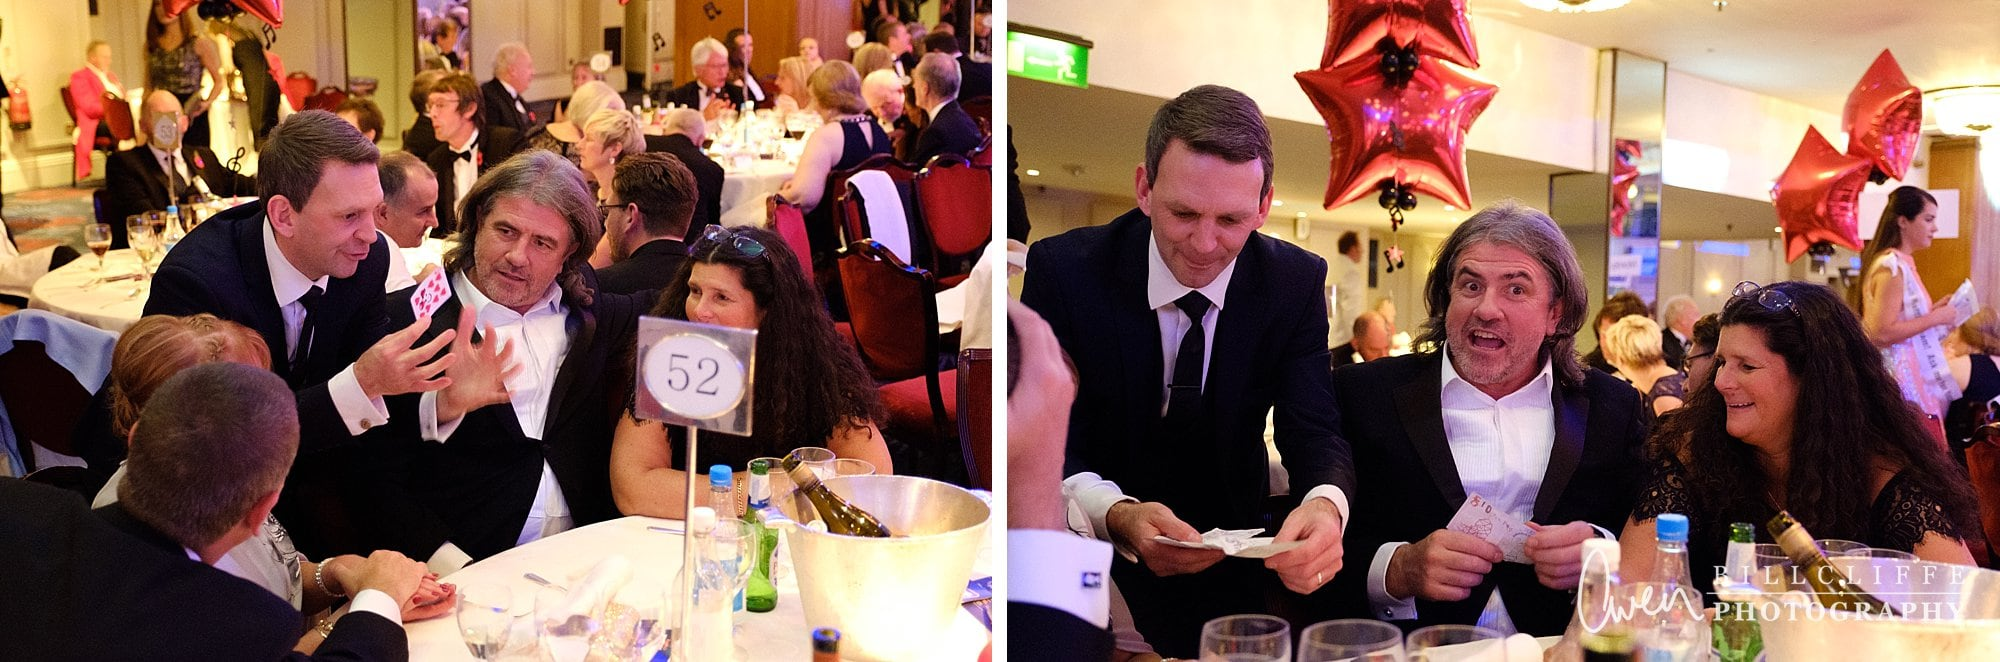 london wedding photographer magician lee smith 016 - Event Entertainer Spotlight: Lee Smith, Walkabout Magician